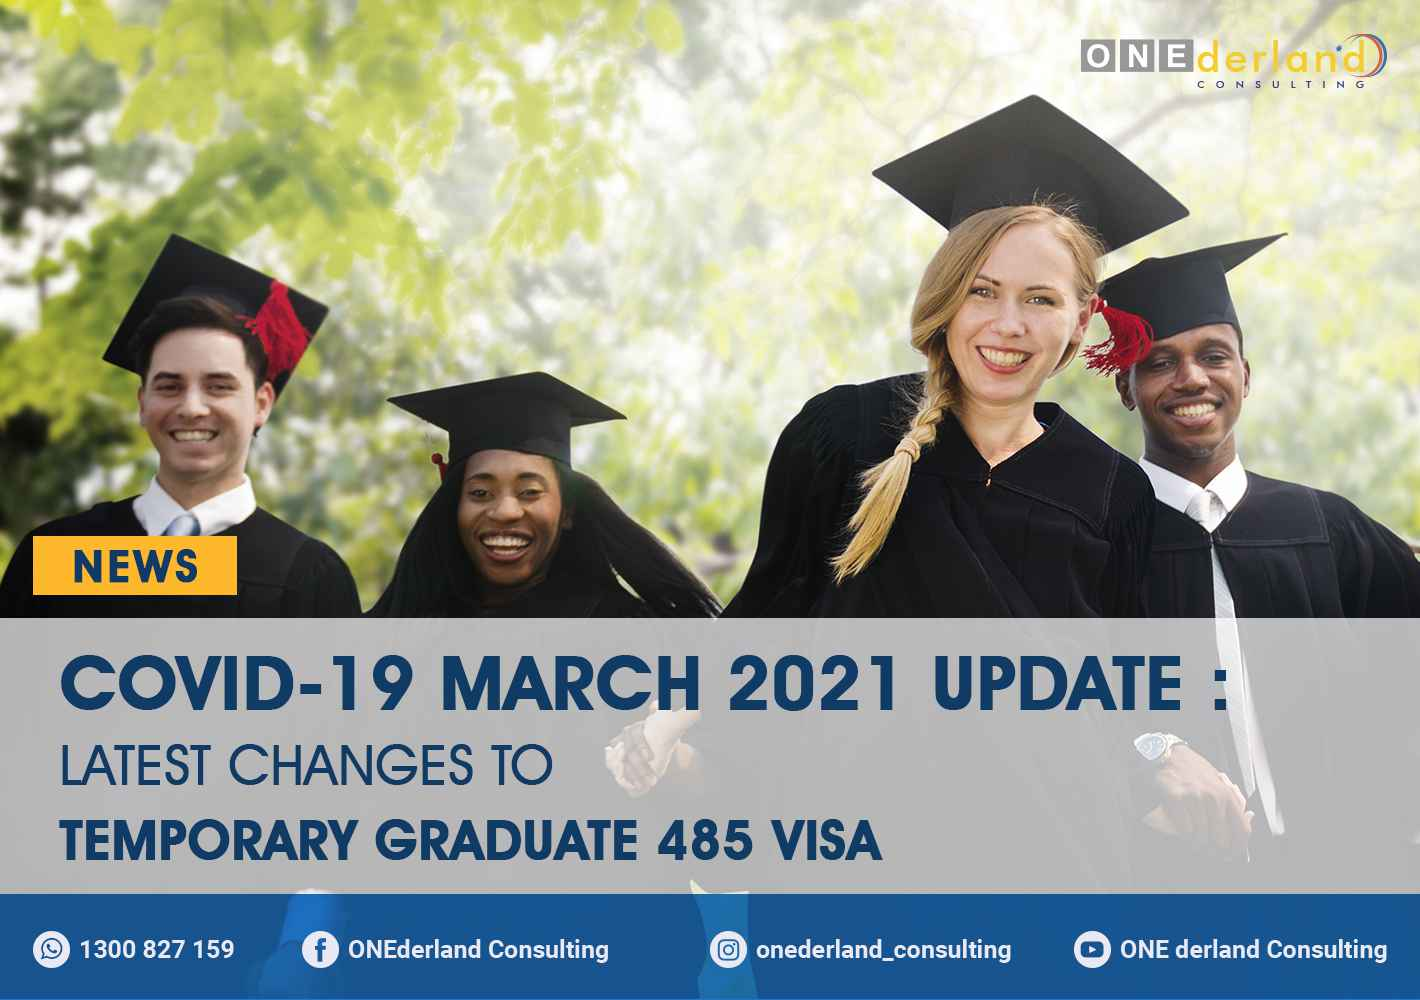 COVID-19 UPDATE: March 2021 Changes to Temporary Graduate 485 Visa